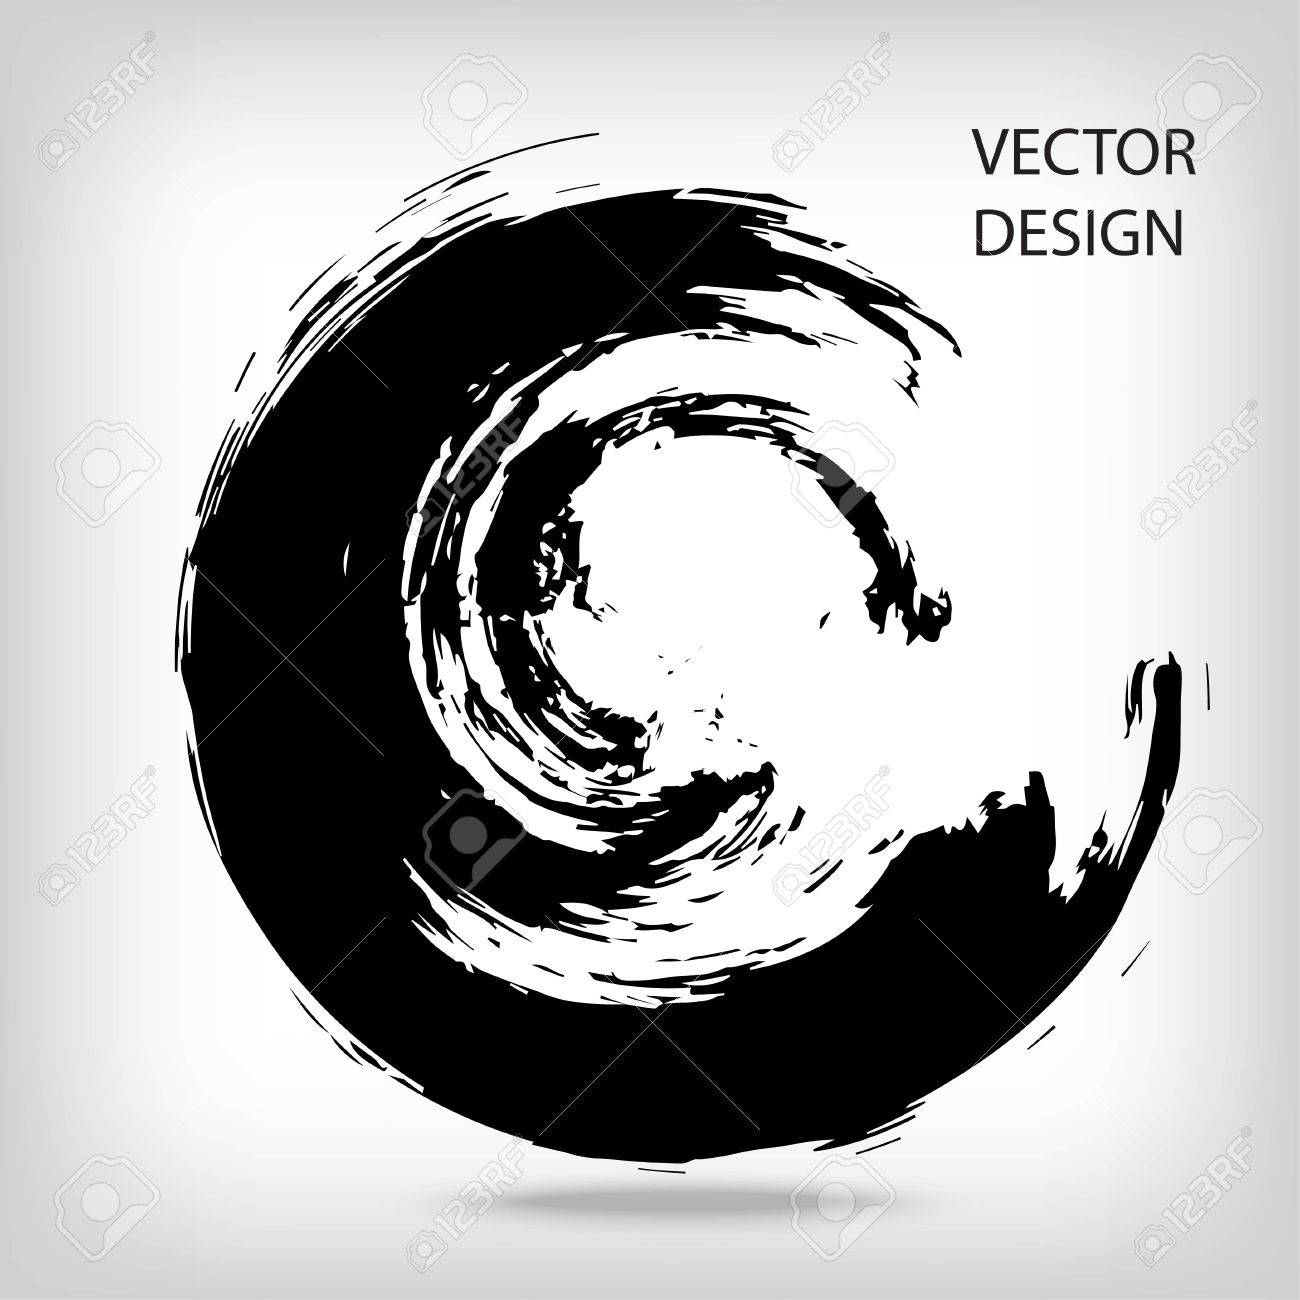 Hand drawn circle shape. Circular label, design element, frame. Brush abstract wave. Black enso zen symbol. Vector illustration. Place for text. - 64695764